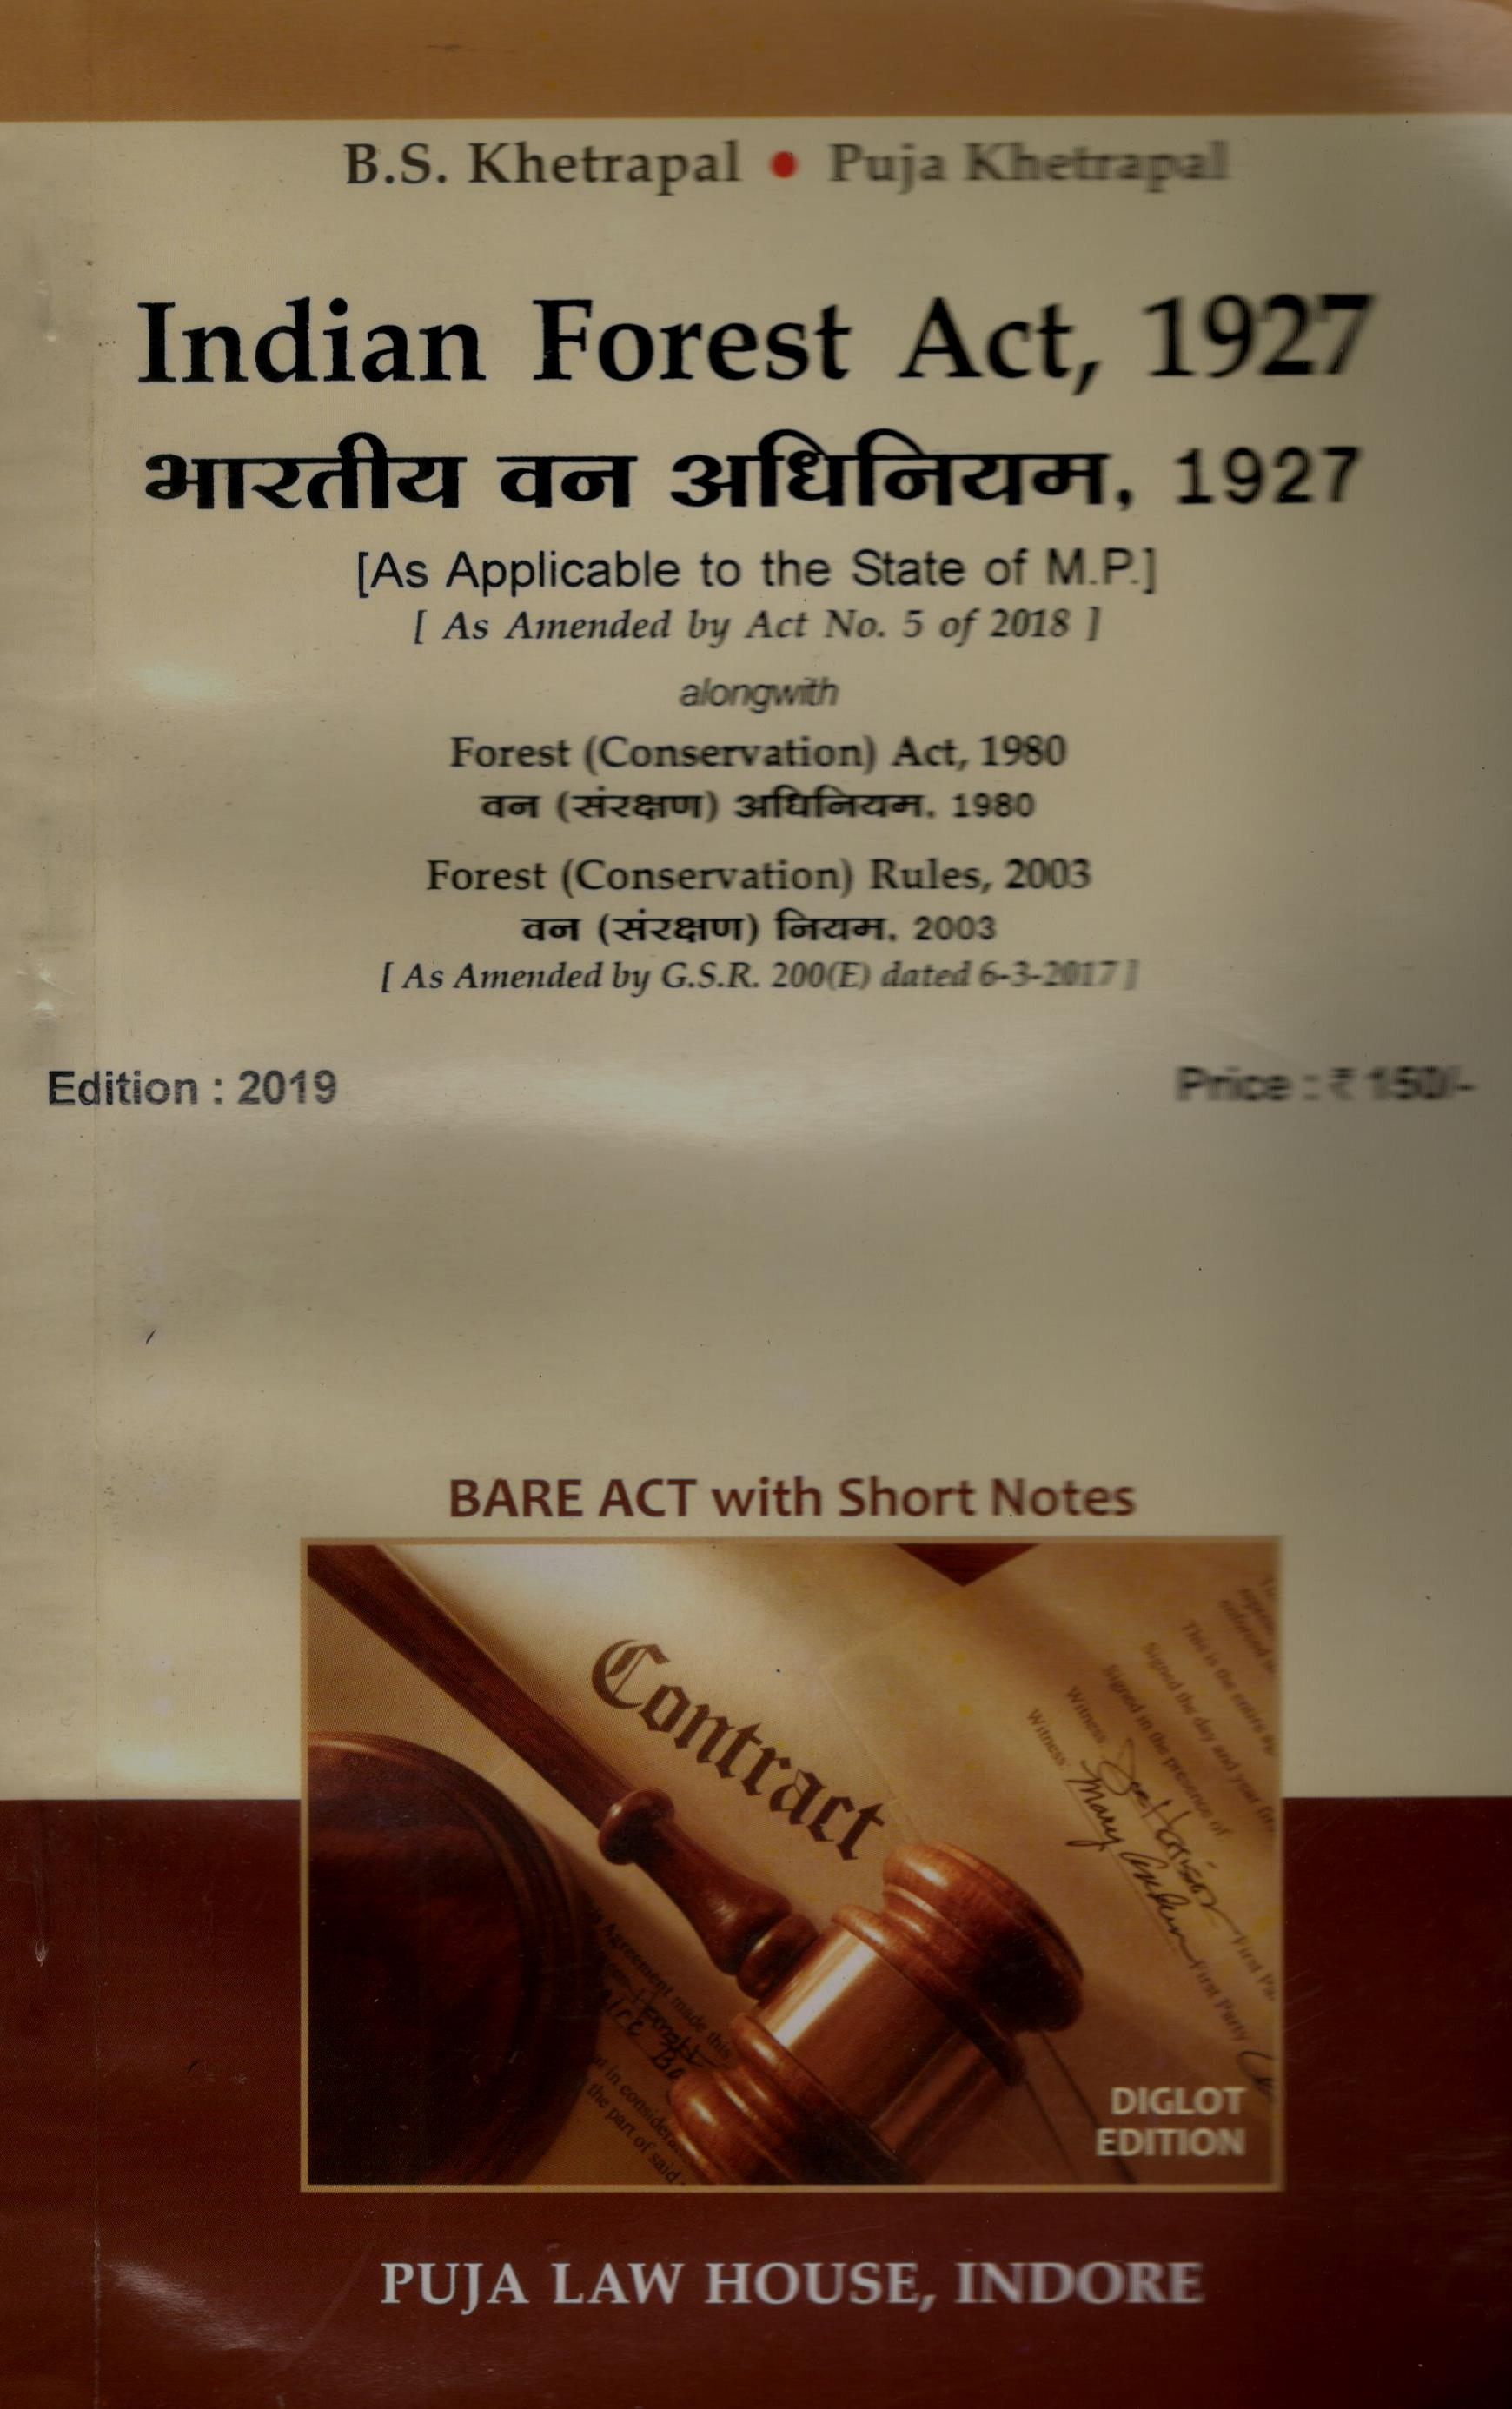 भारतीय वन अधिनियम, 1927 / Indian Forest Act, 1927